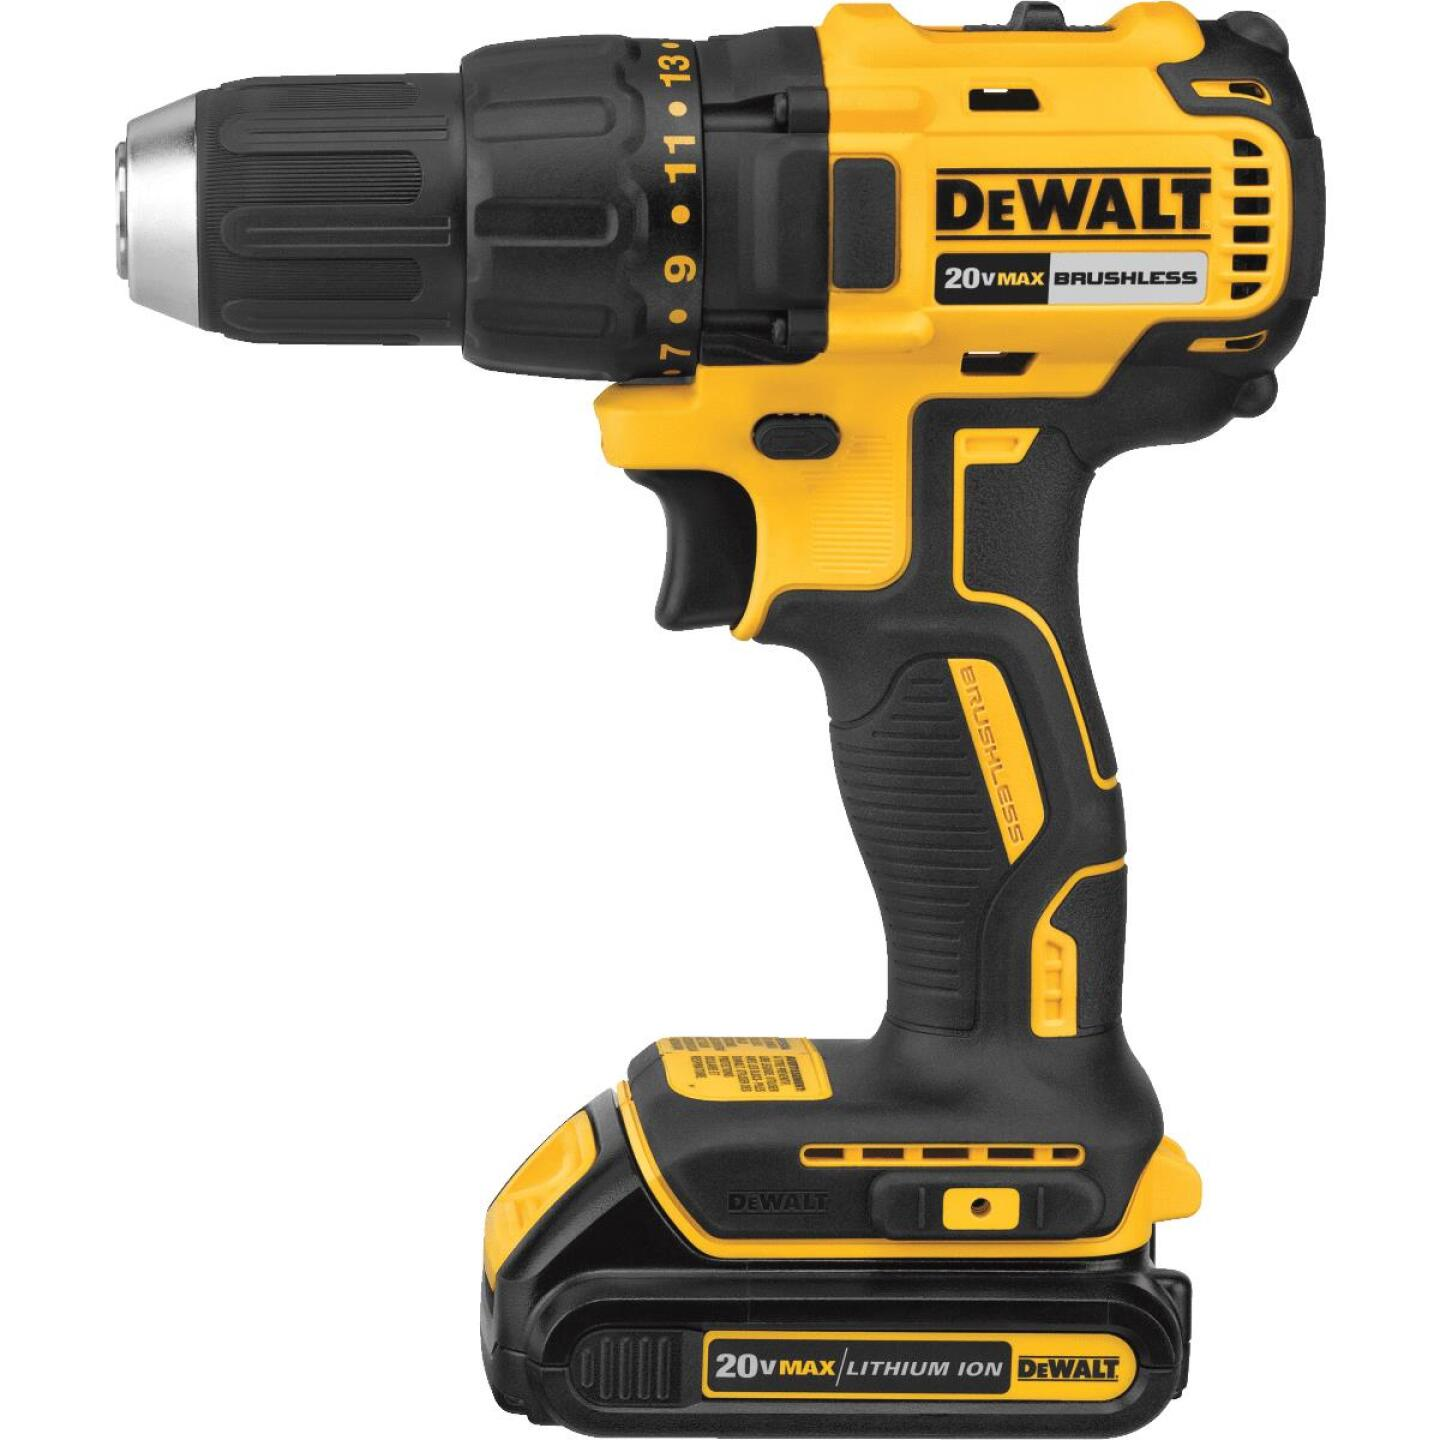 DeWalt 20 Volt MAX Lithium-Ion Brushless 1/2 In. Compact Cordless Drill Kit Image 2